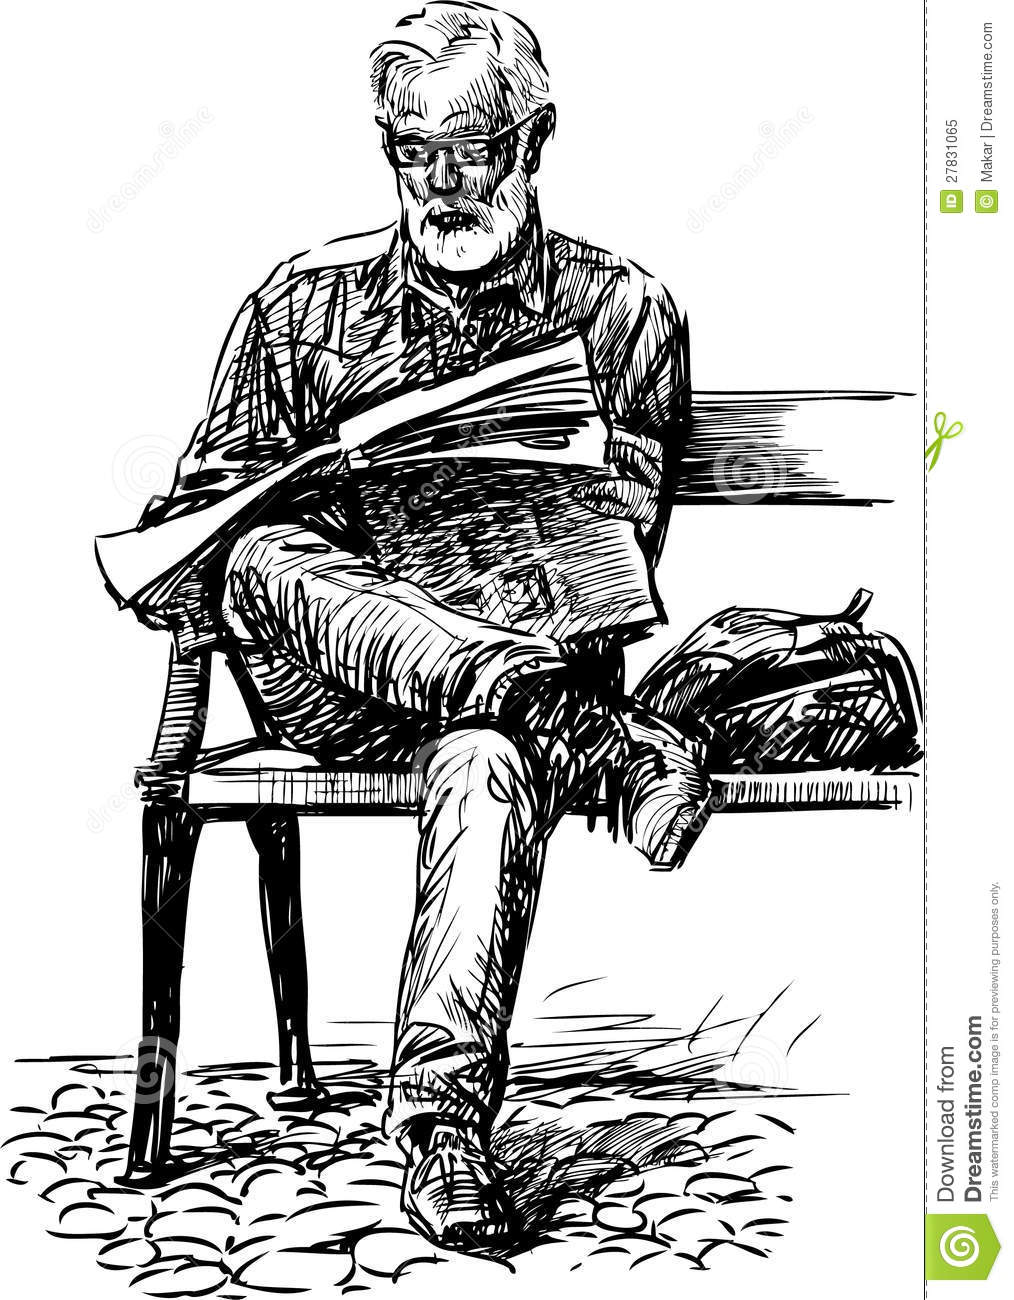 man reads a newspaper stock vector. illustration of gray - 27831065